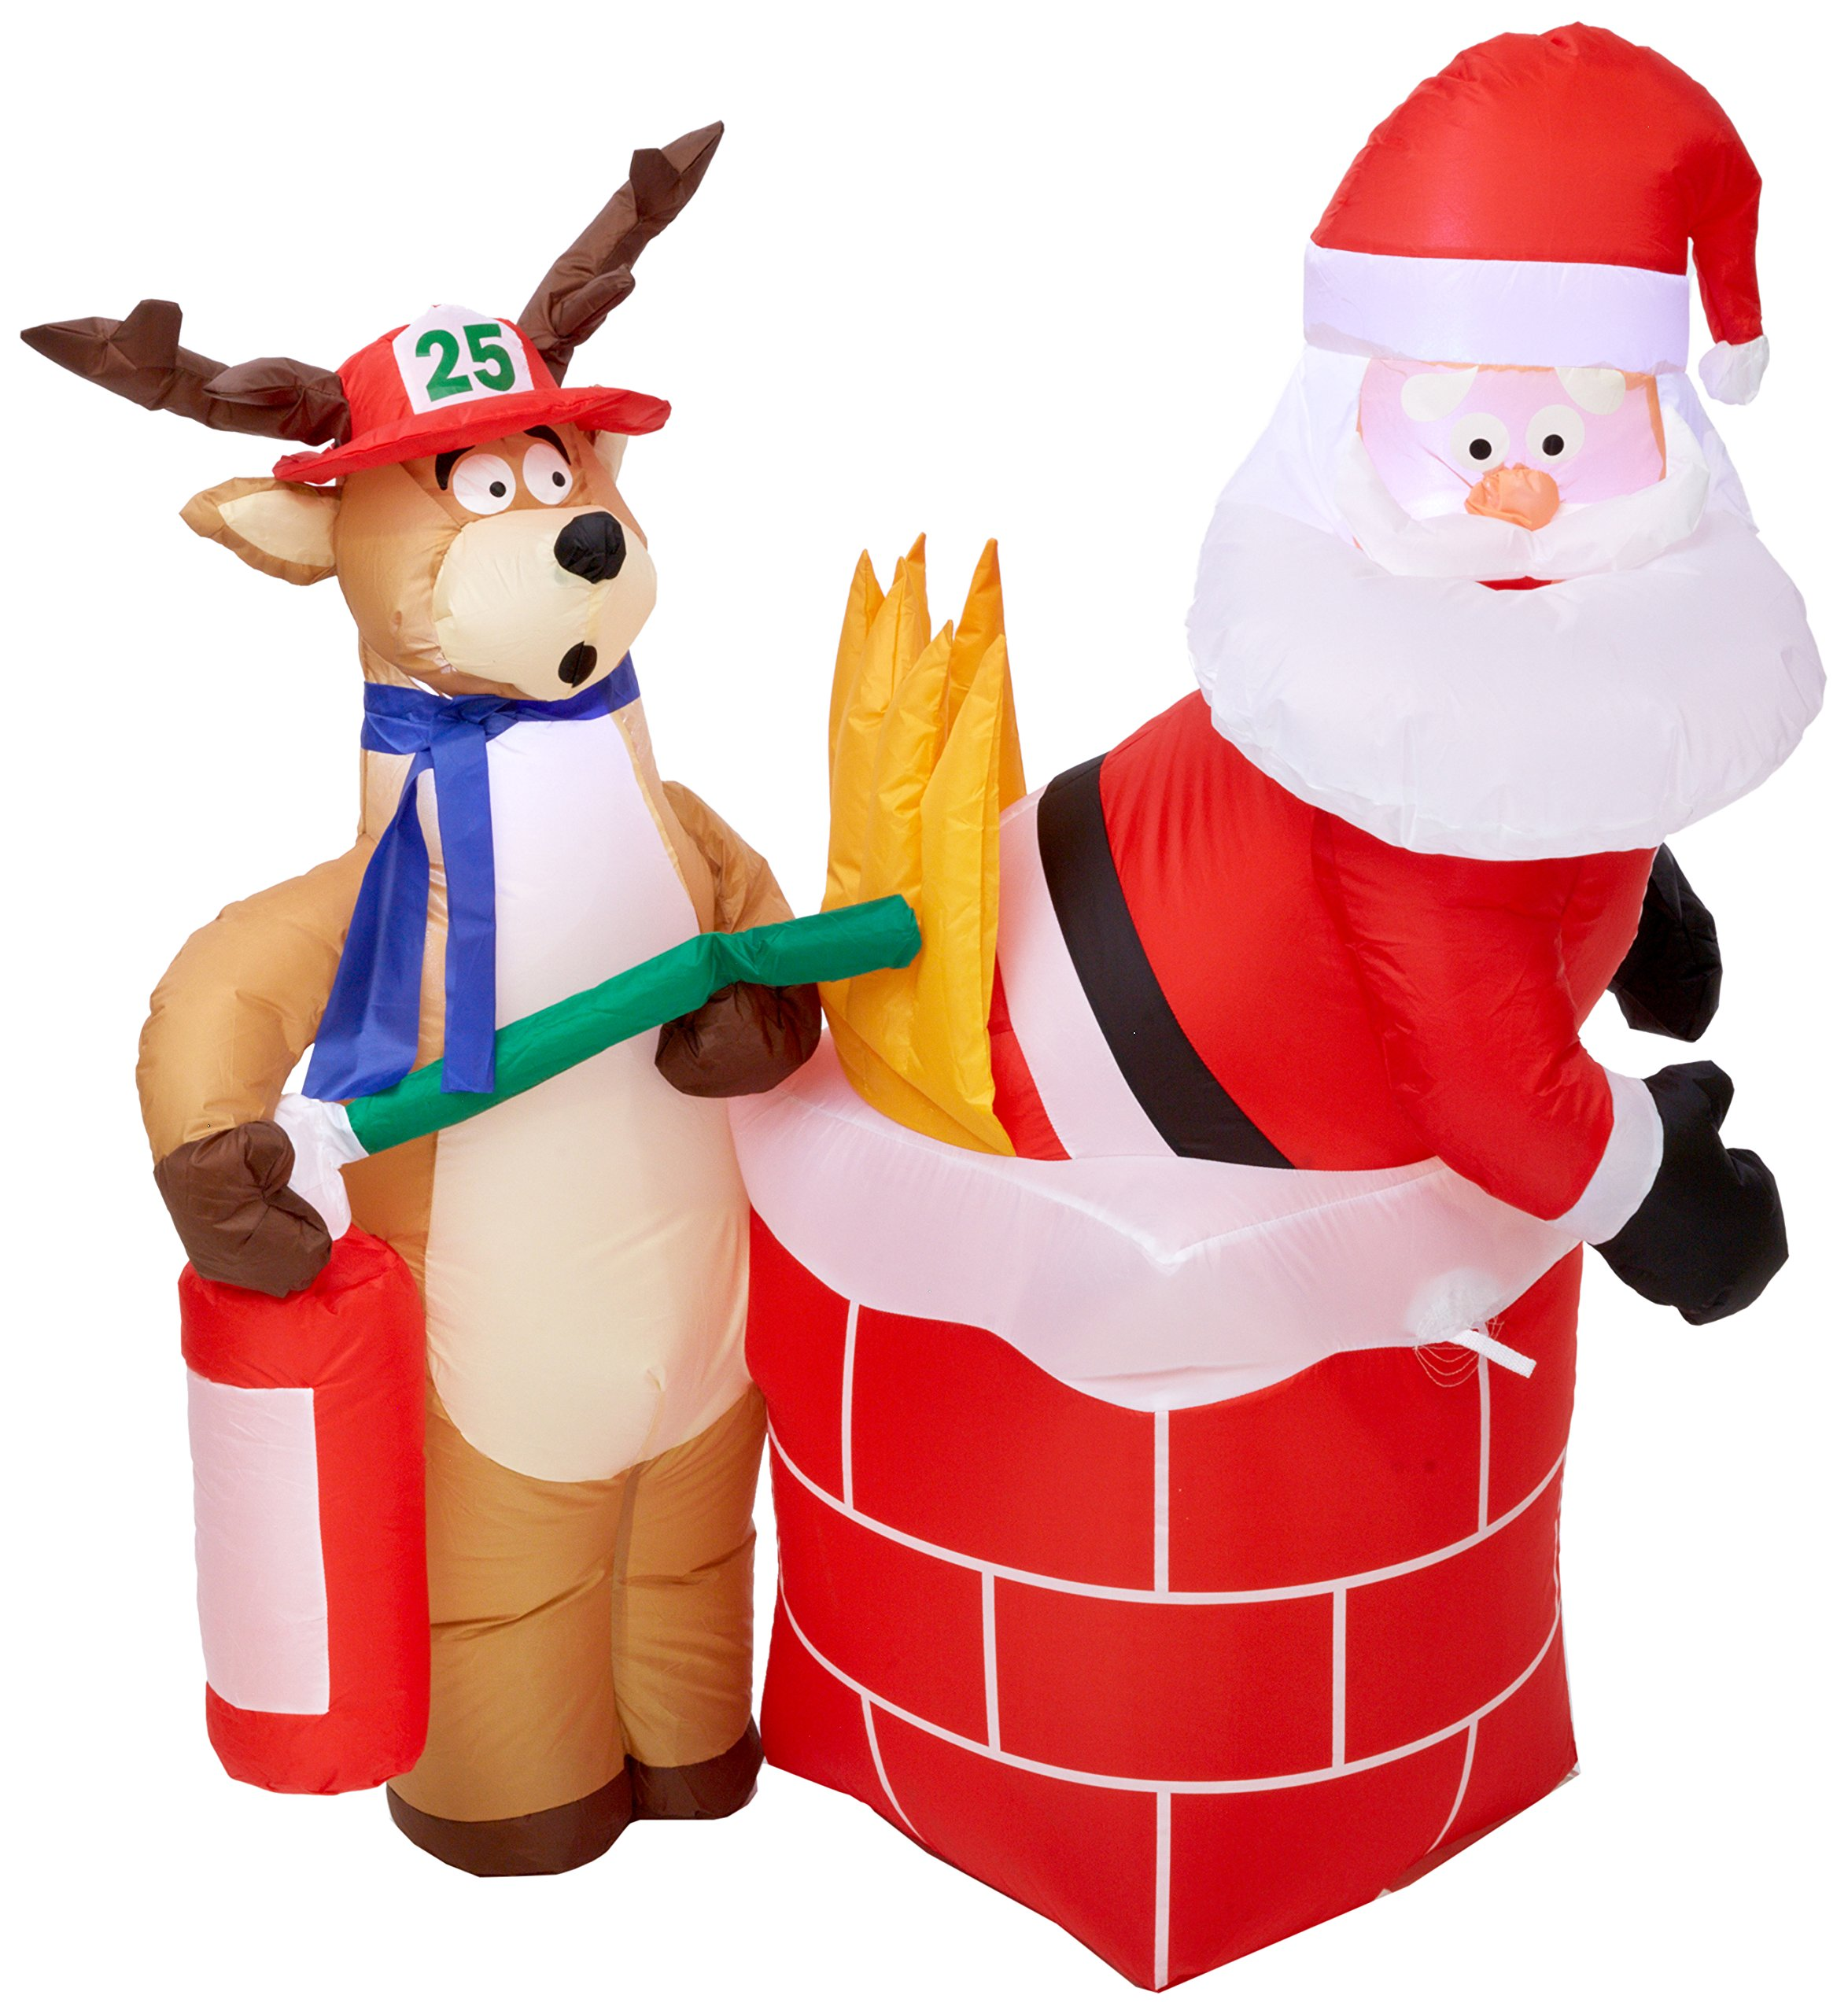 Gemmy Inflatable Holiday G08 87191 Air Blown Santa on Fire Scene Decor by Gemmy Inflateables  Holiday